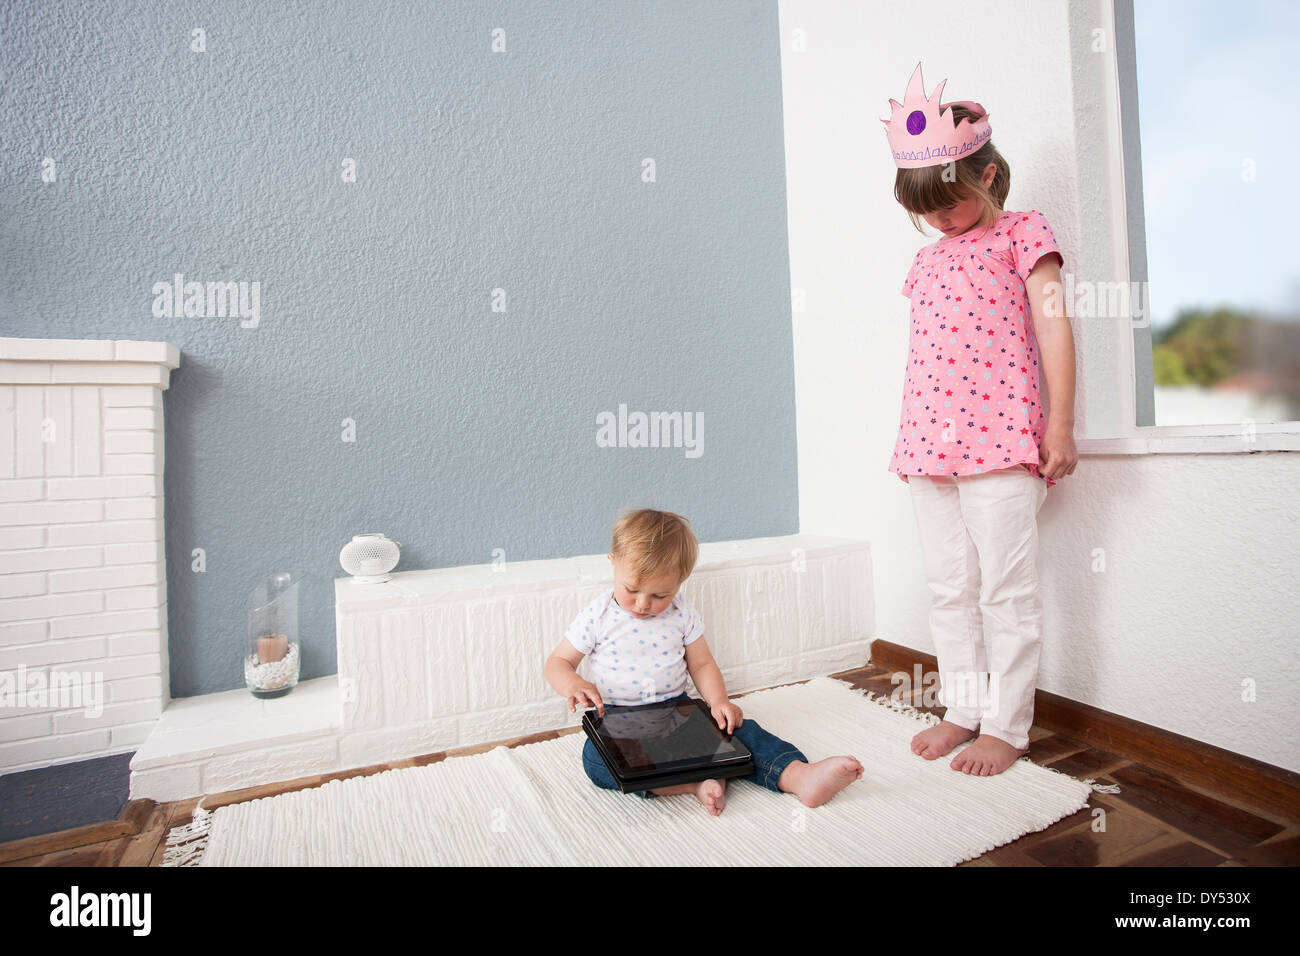 Girl watching over baby boy playing digital tablet Stock Photo